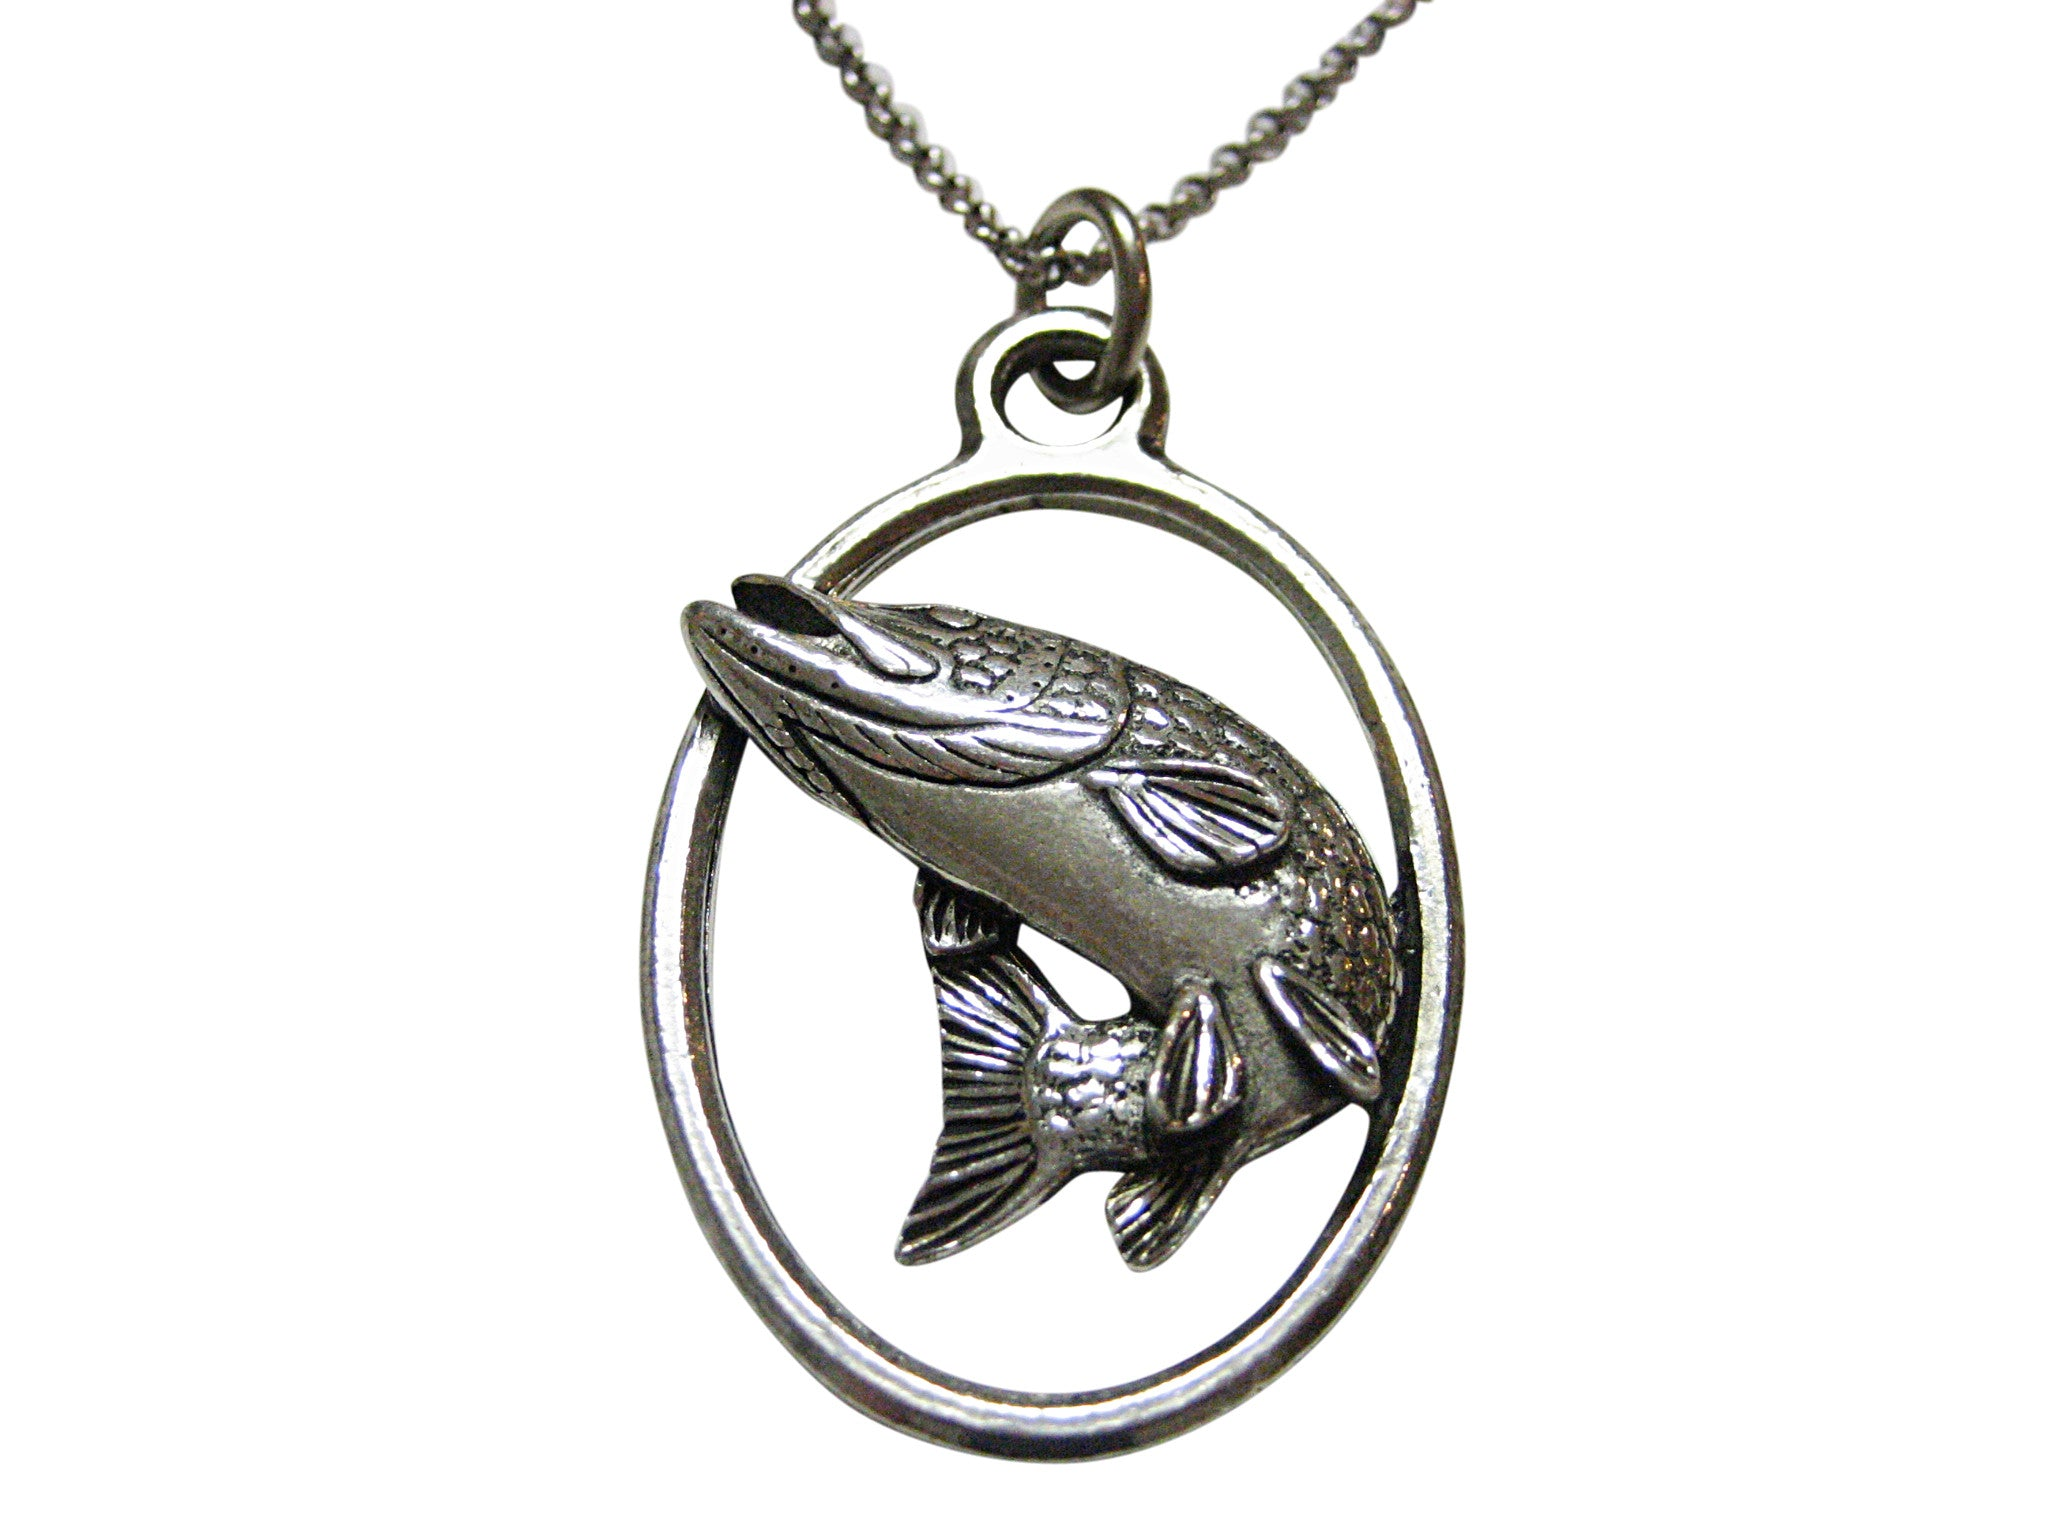 Turning Pike Fish Large Oval Pendant Necklace